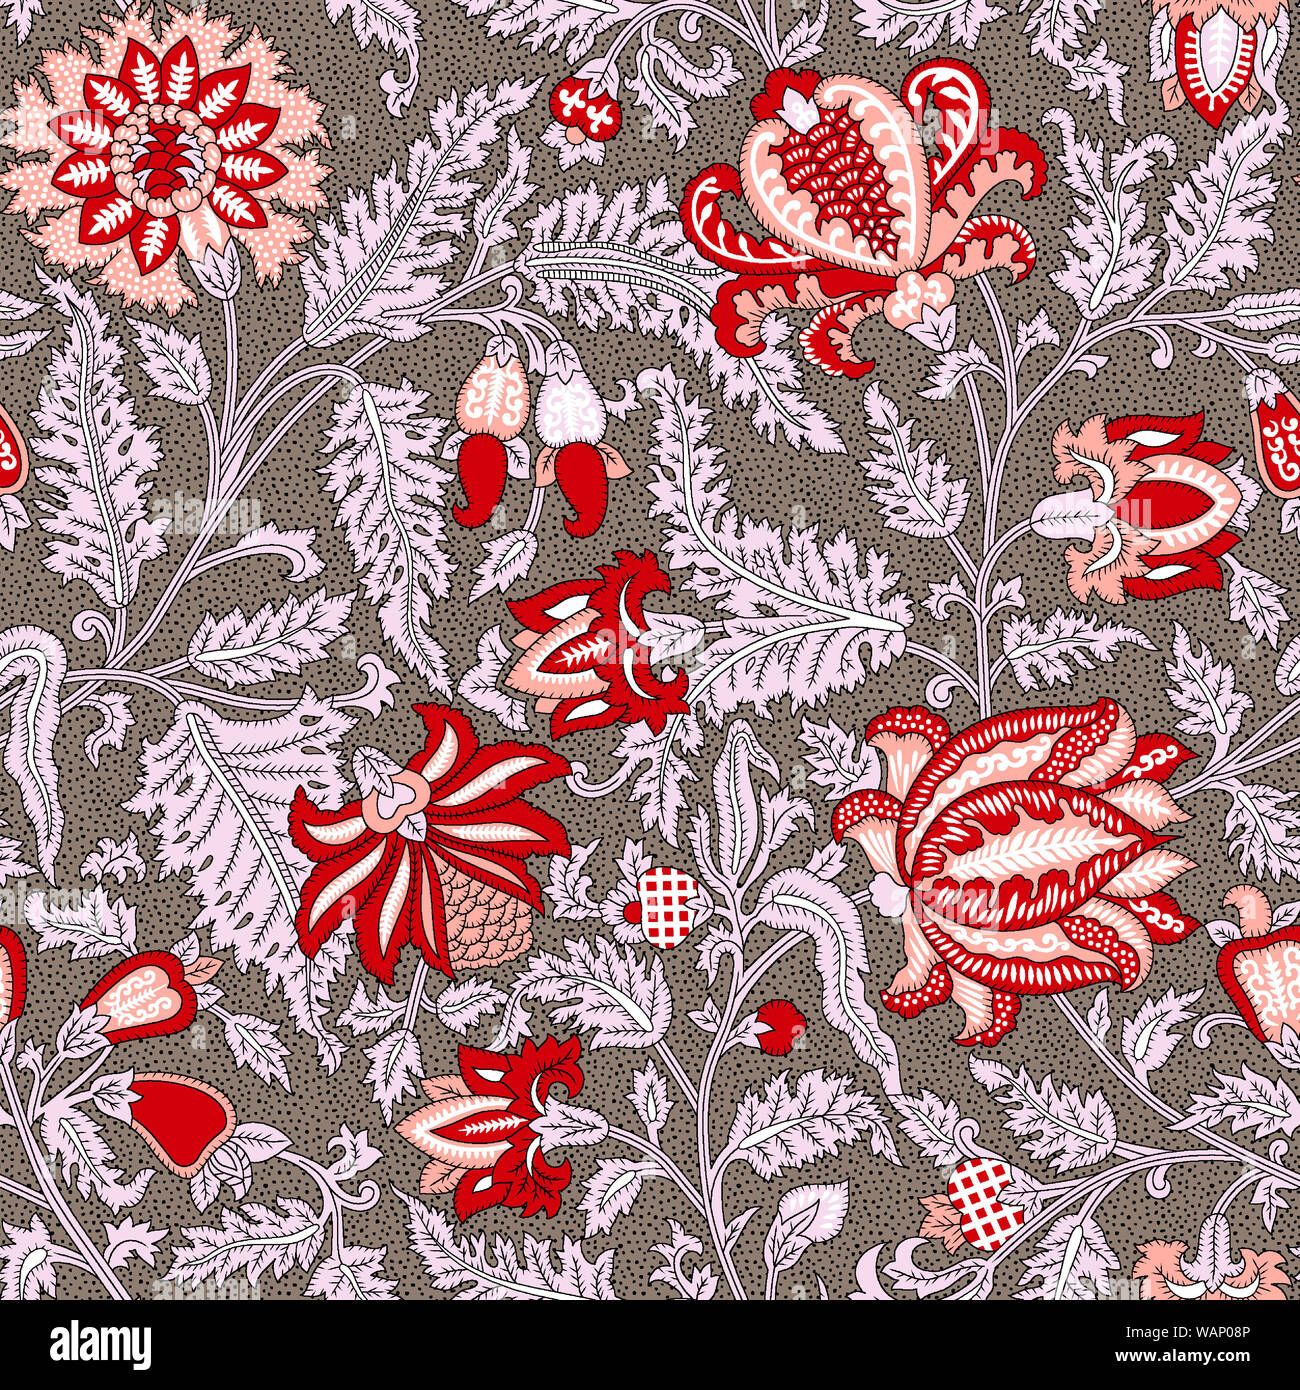 Floral Indian Seamless Pattern Textile Design Wallpaper